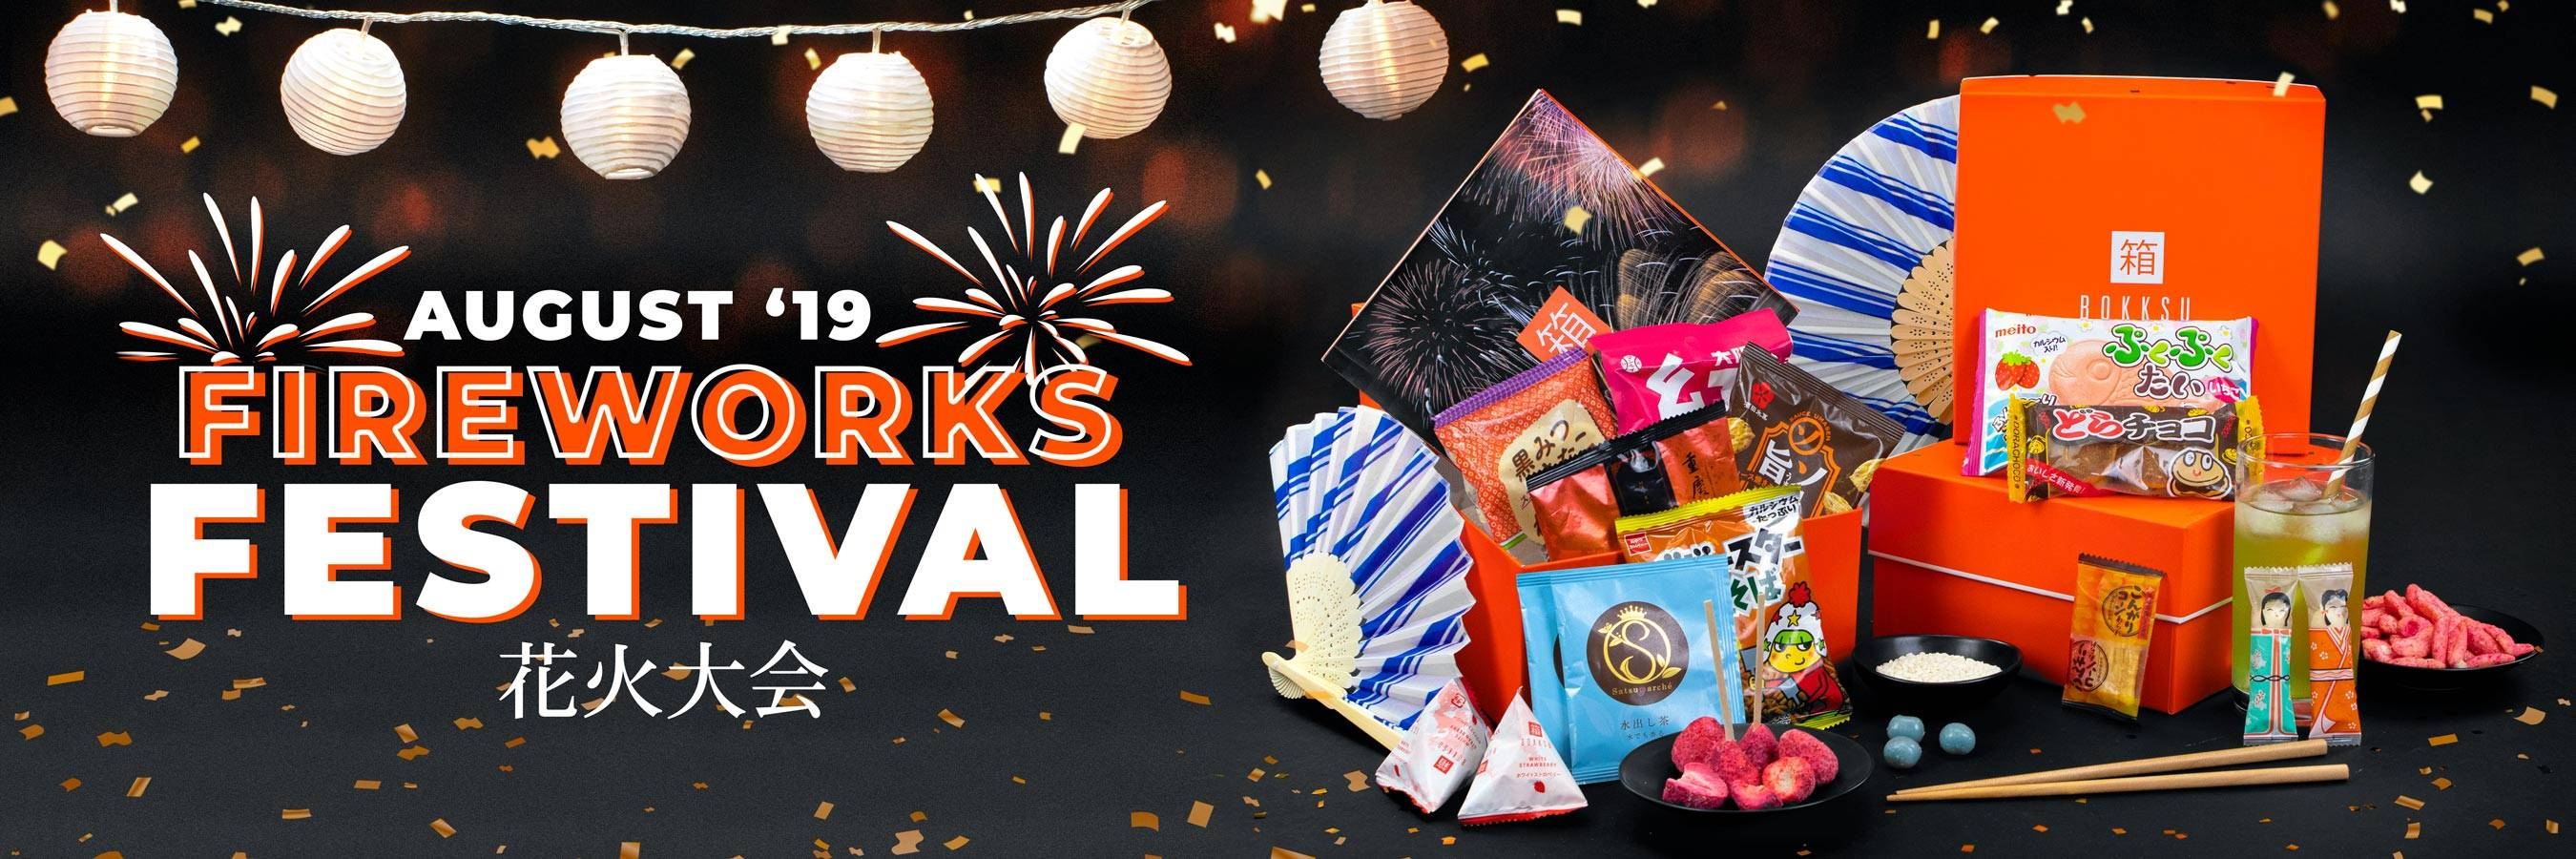 Fireworks Festival Bokksu, Japanese subscription box